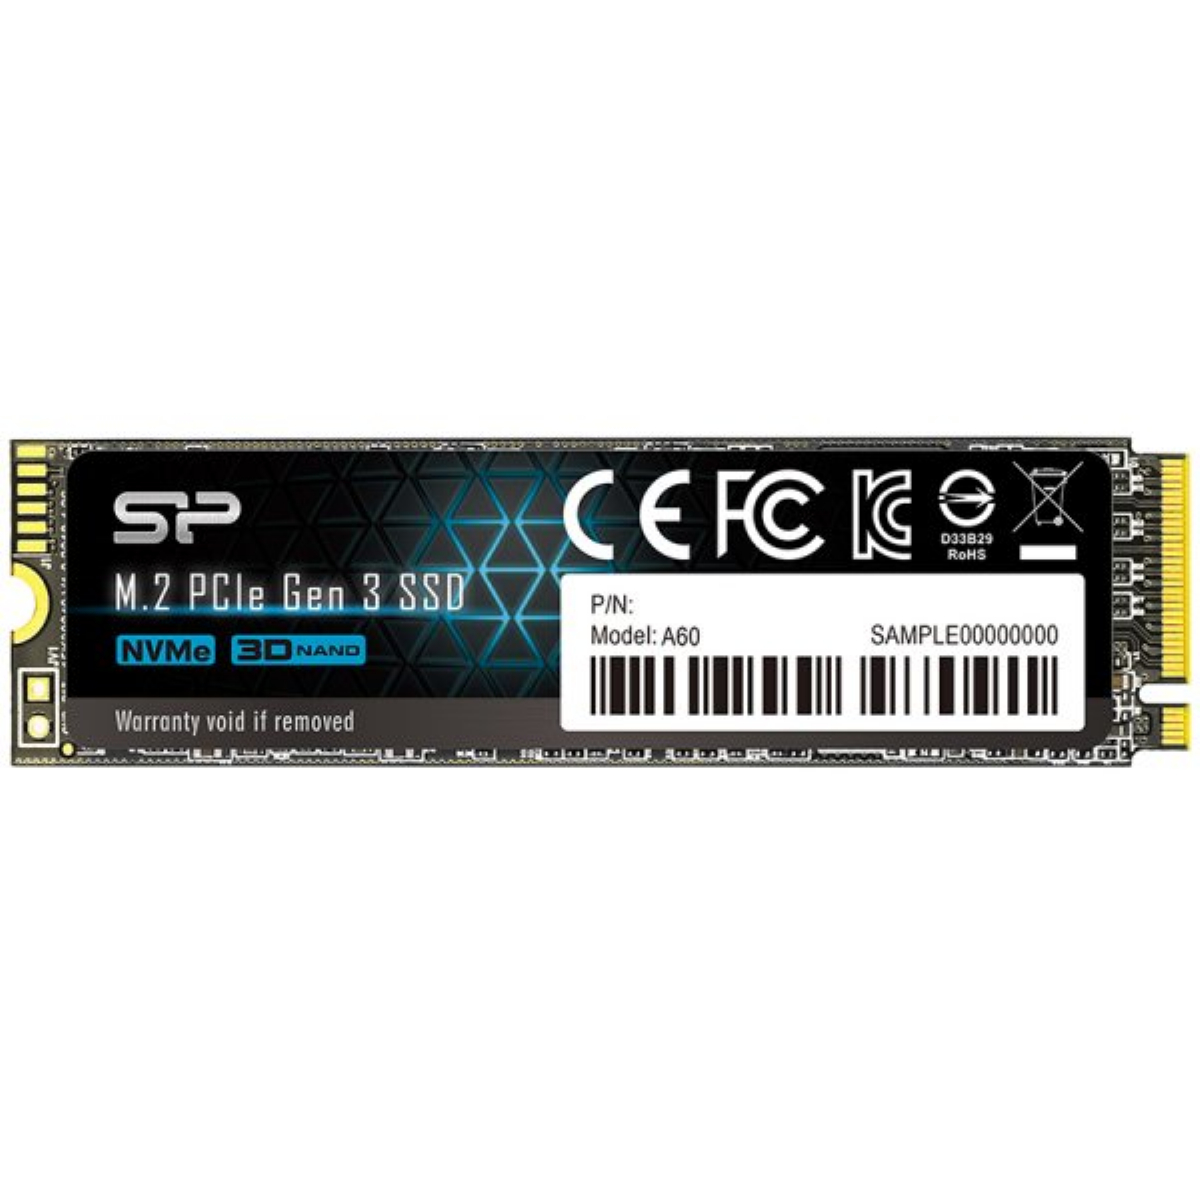 Диск SSD Silicon Power A60 512GB M.2 PCIe NVMe Gen 3.0 x 4 2280